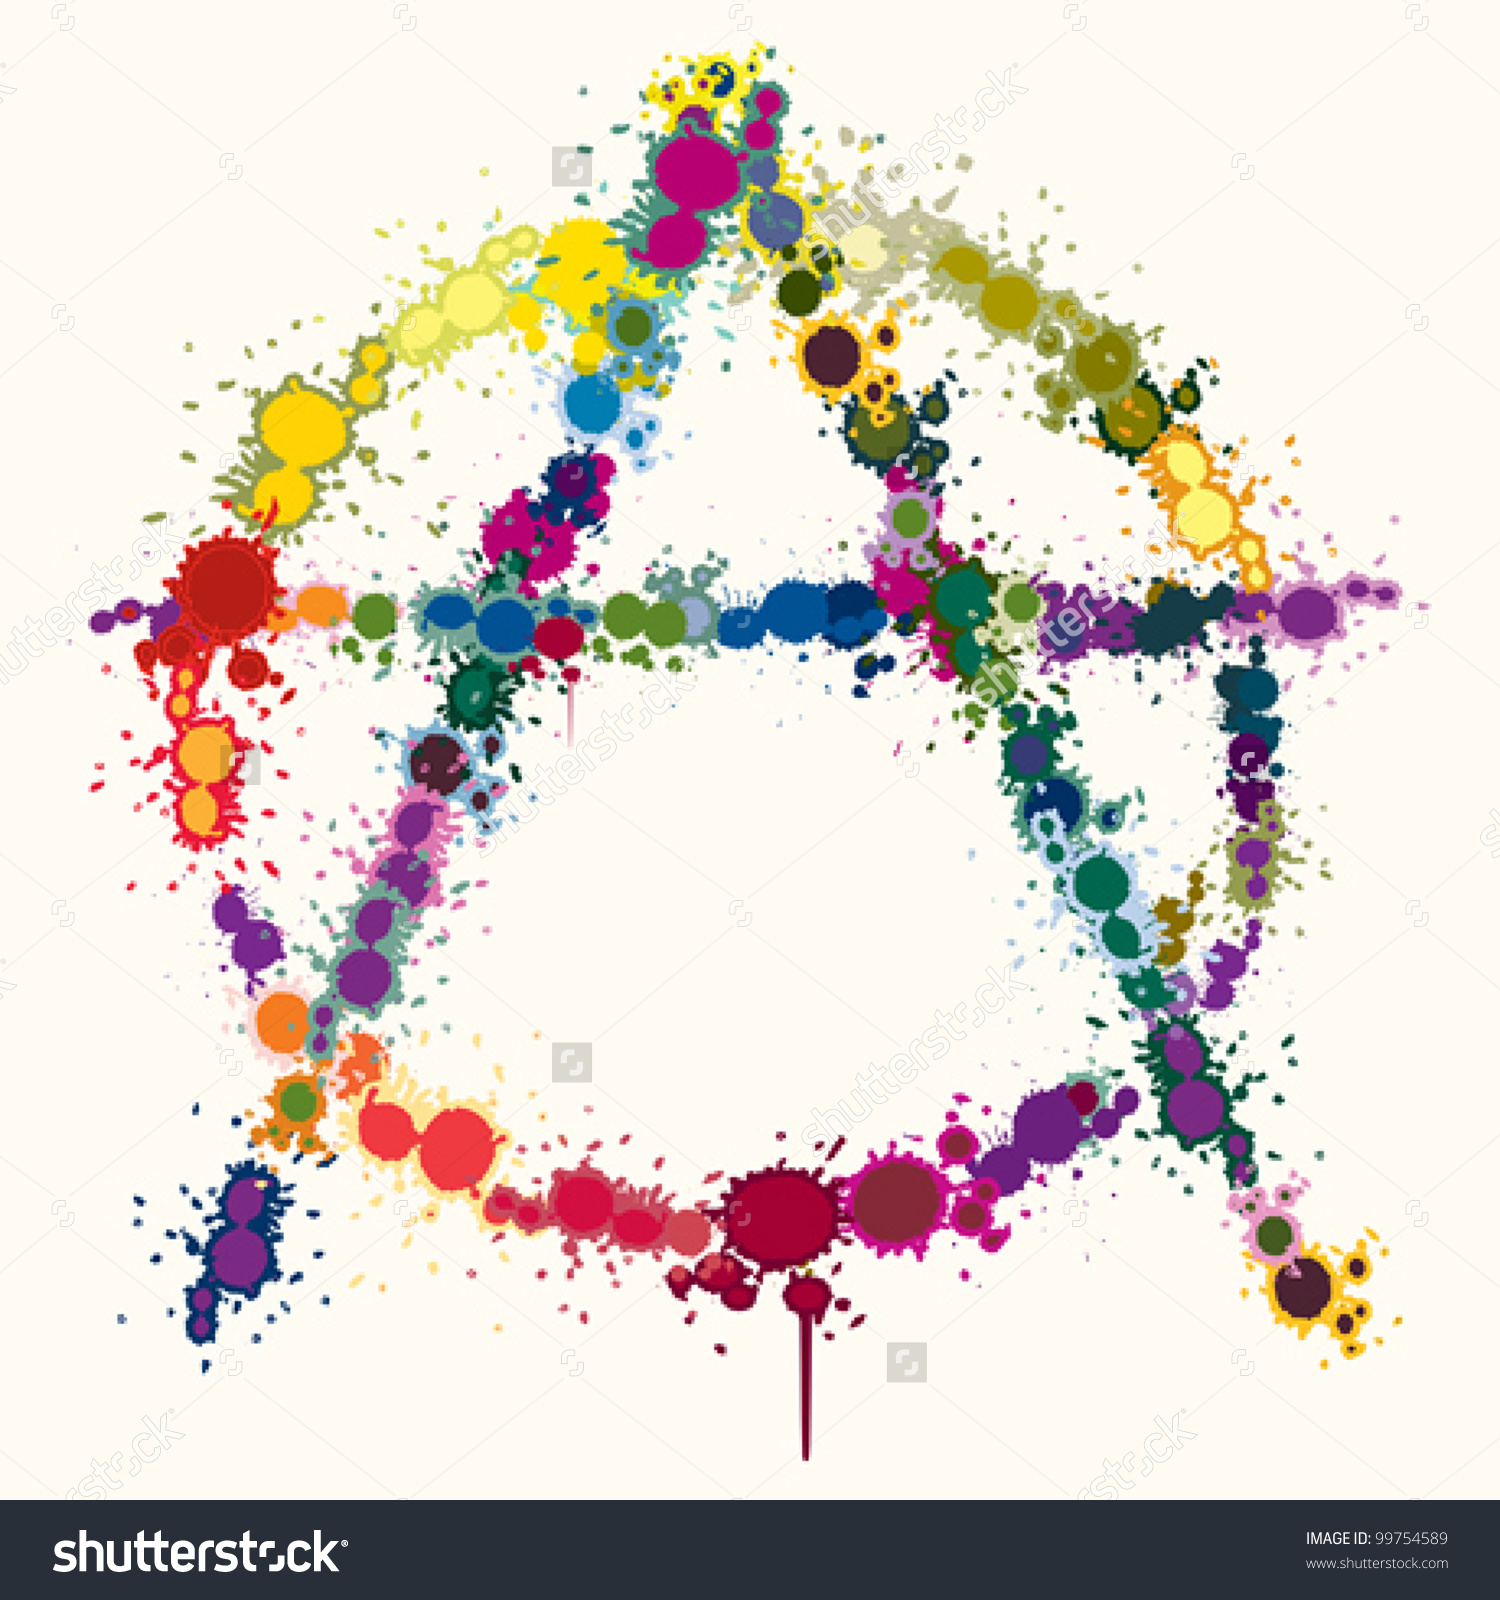 Rainbow Color Anarchy Symbol Background Stock Vector 99754589.